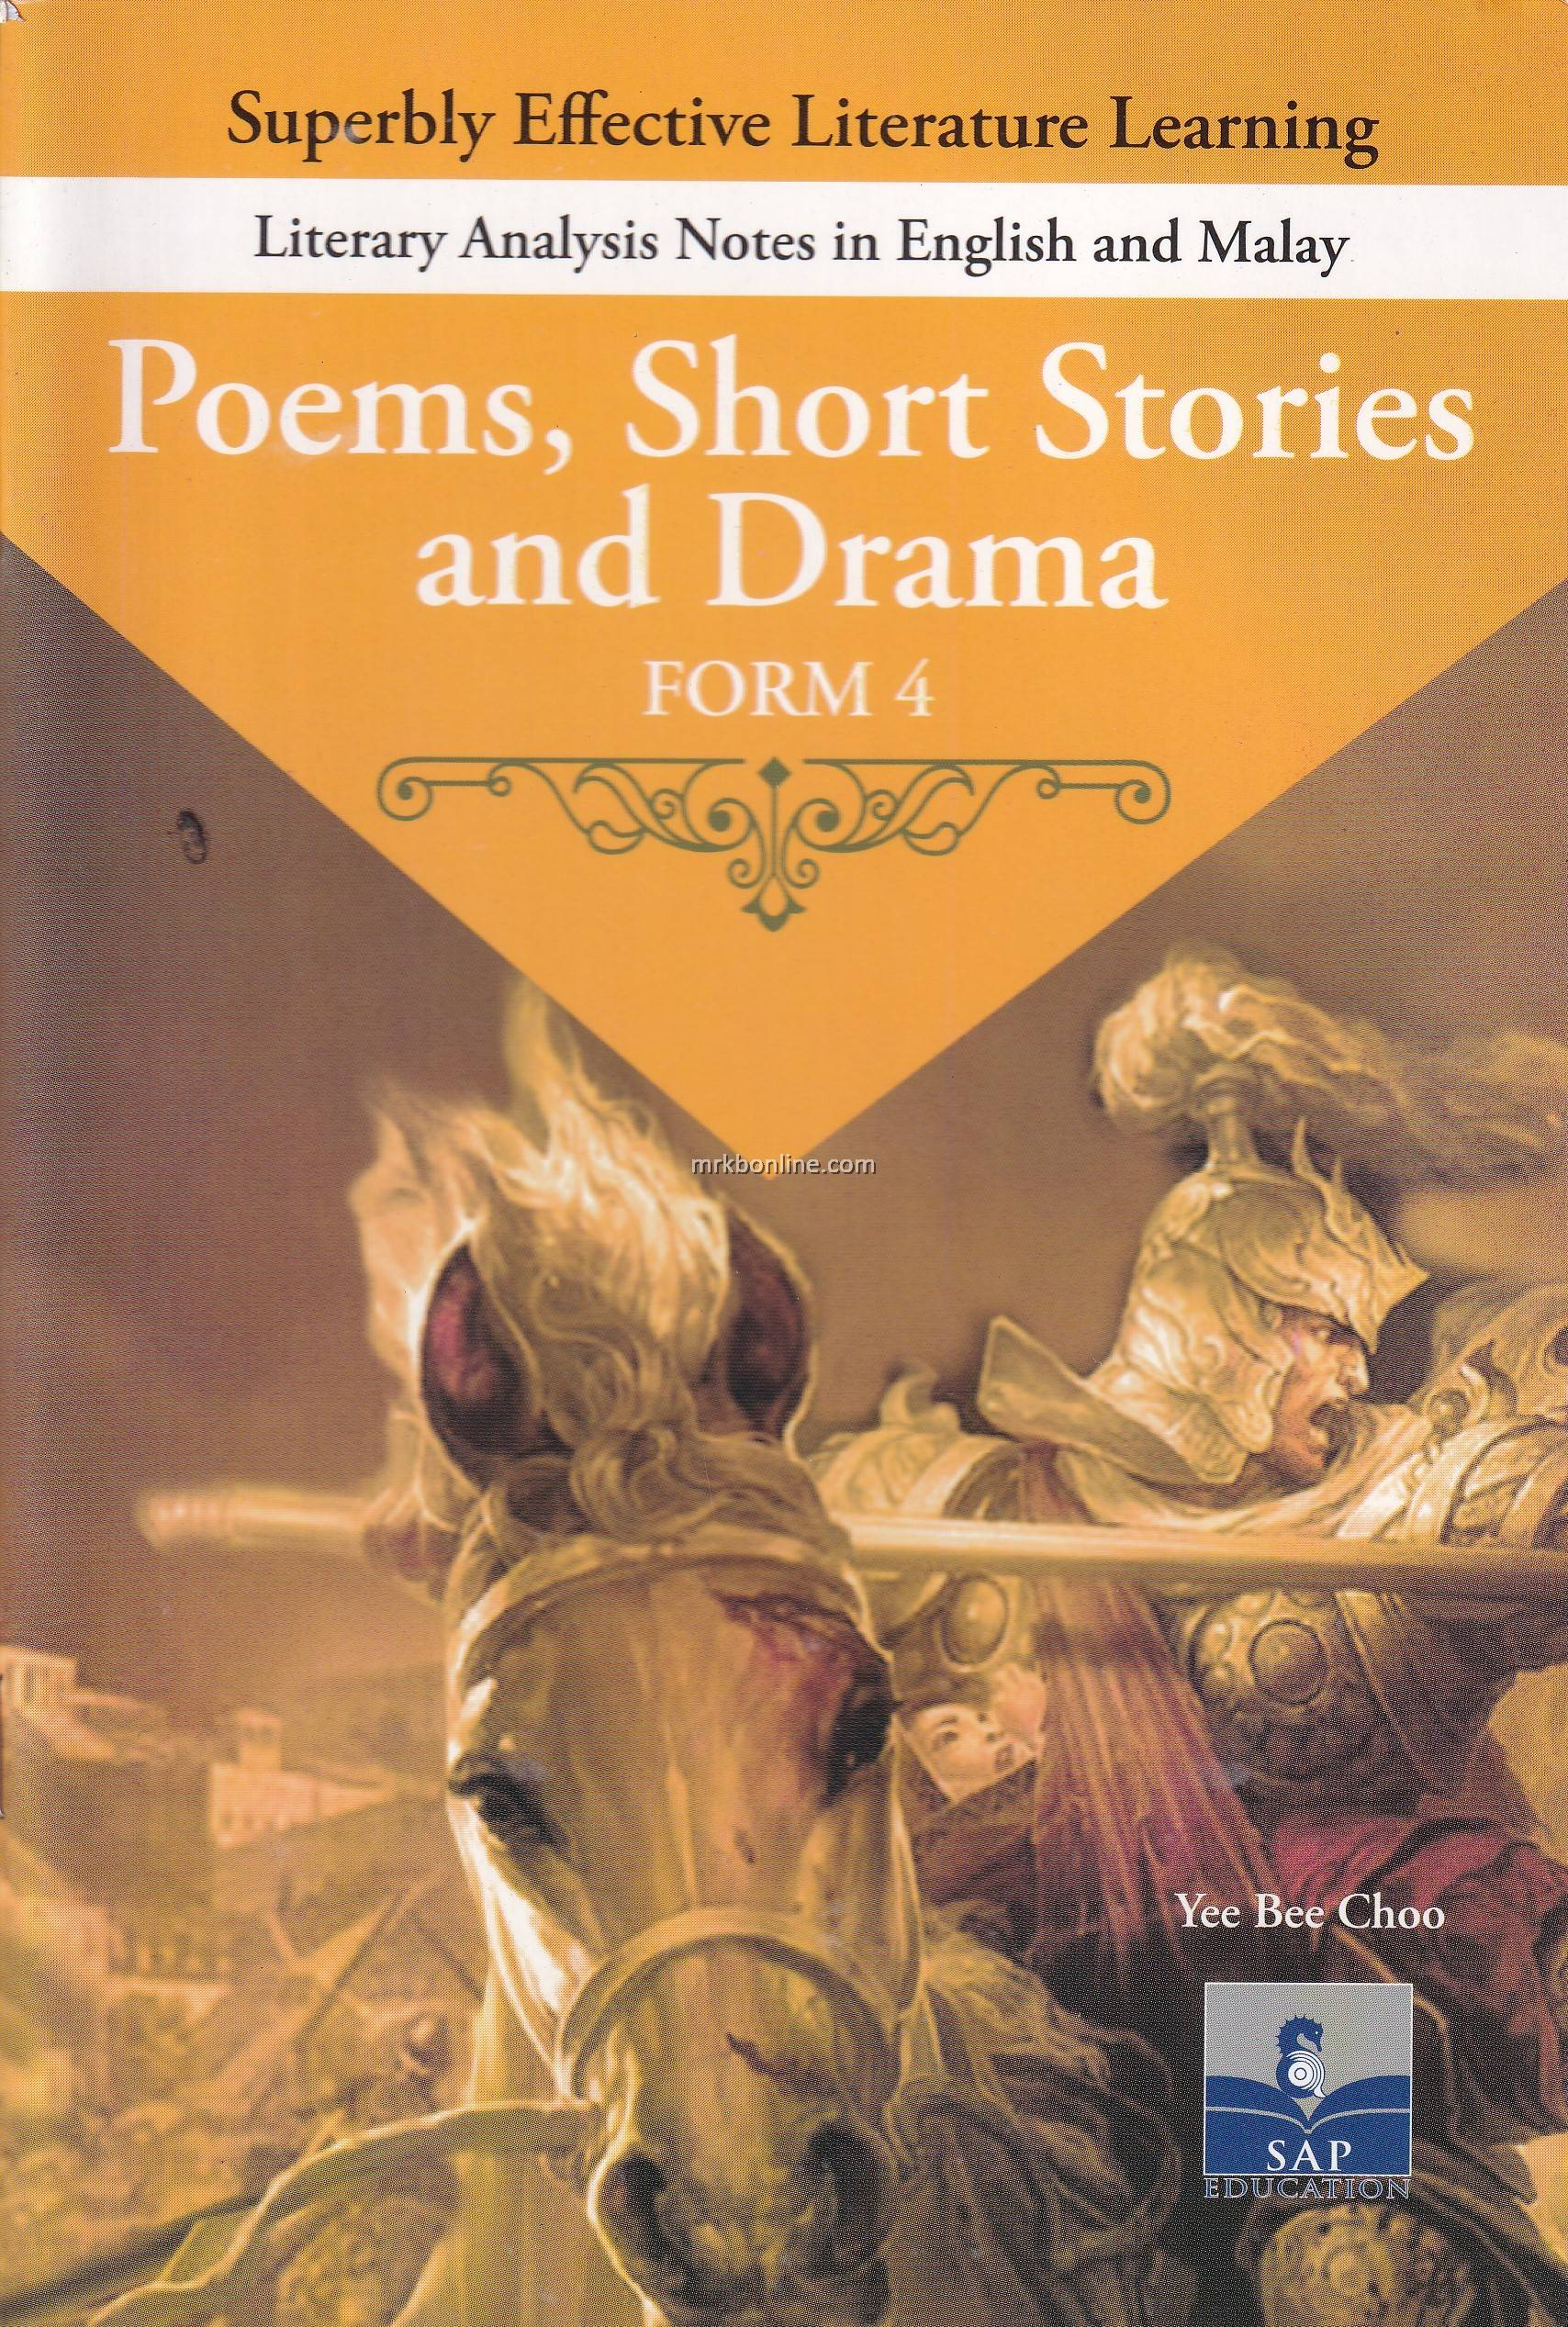 Sians Book of Poetry and Short Stories